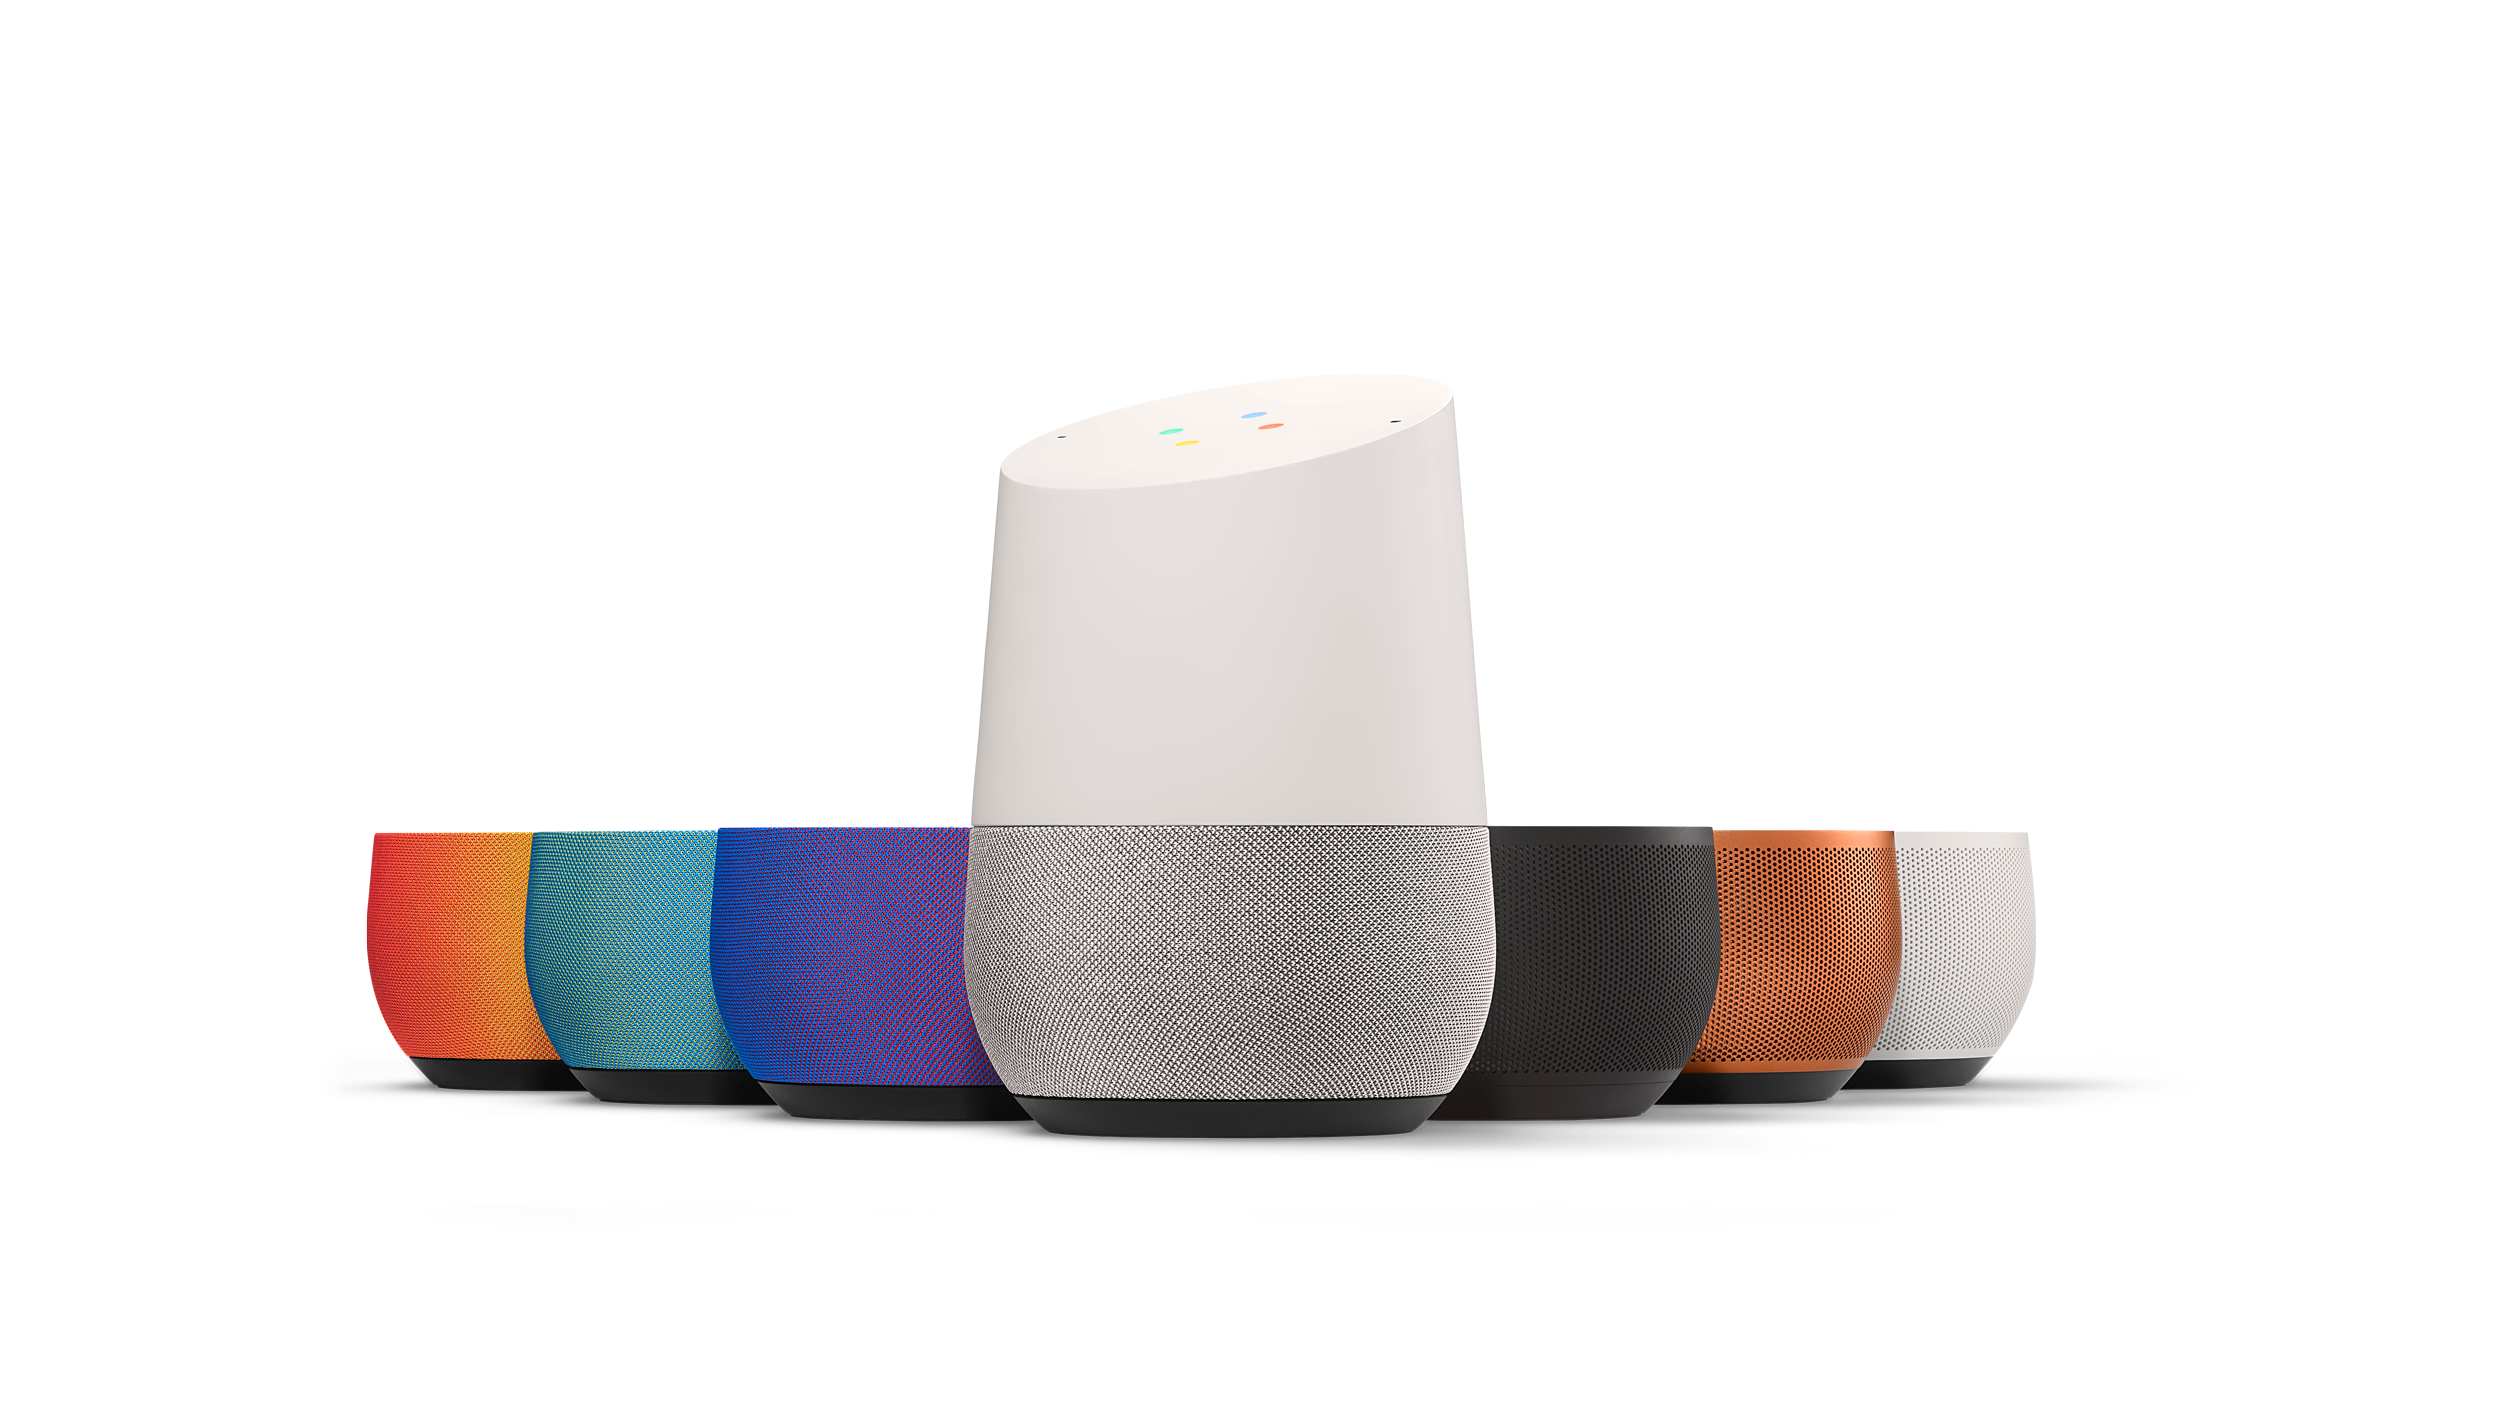 Poll: Would You Use Amazon Echo Or Google Home At Work?